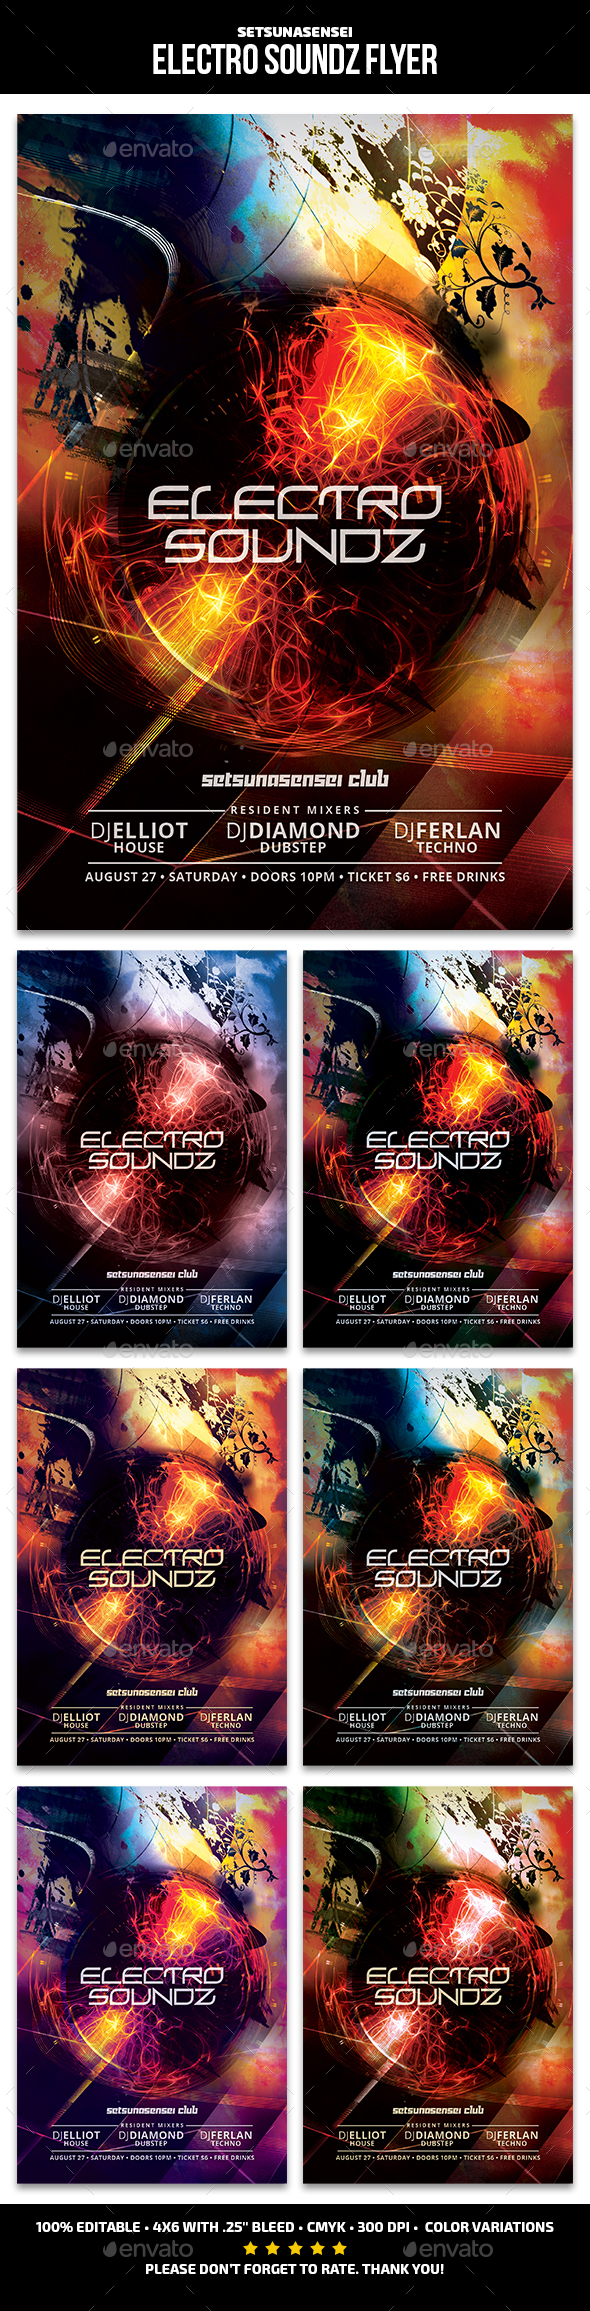 Electro Soundz Flyer - Clubs & Parties Events